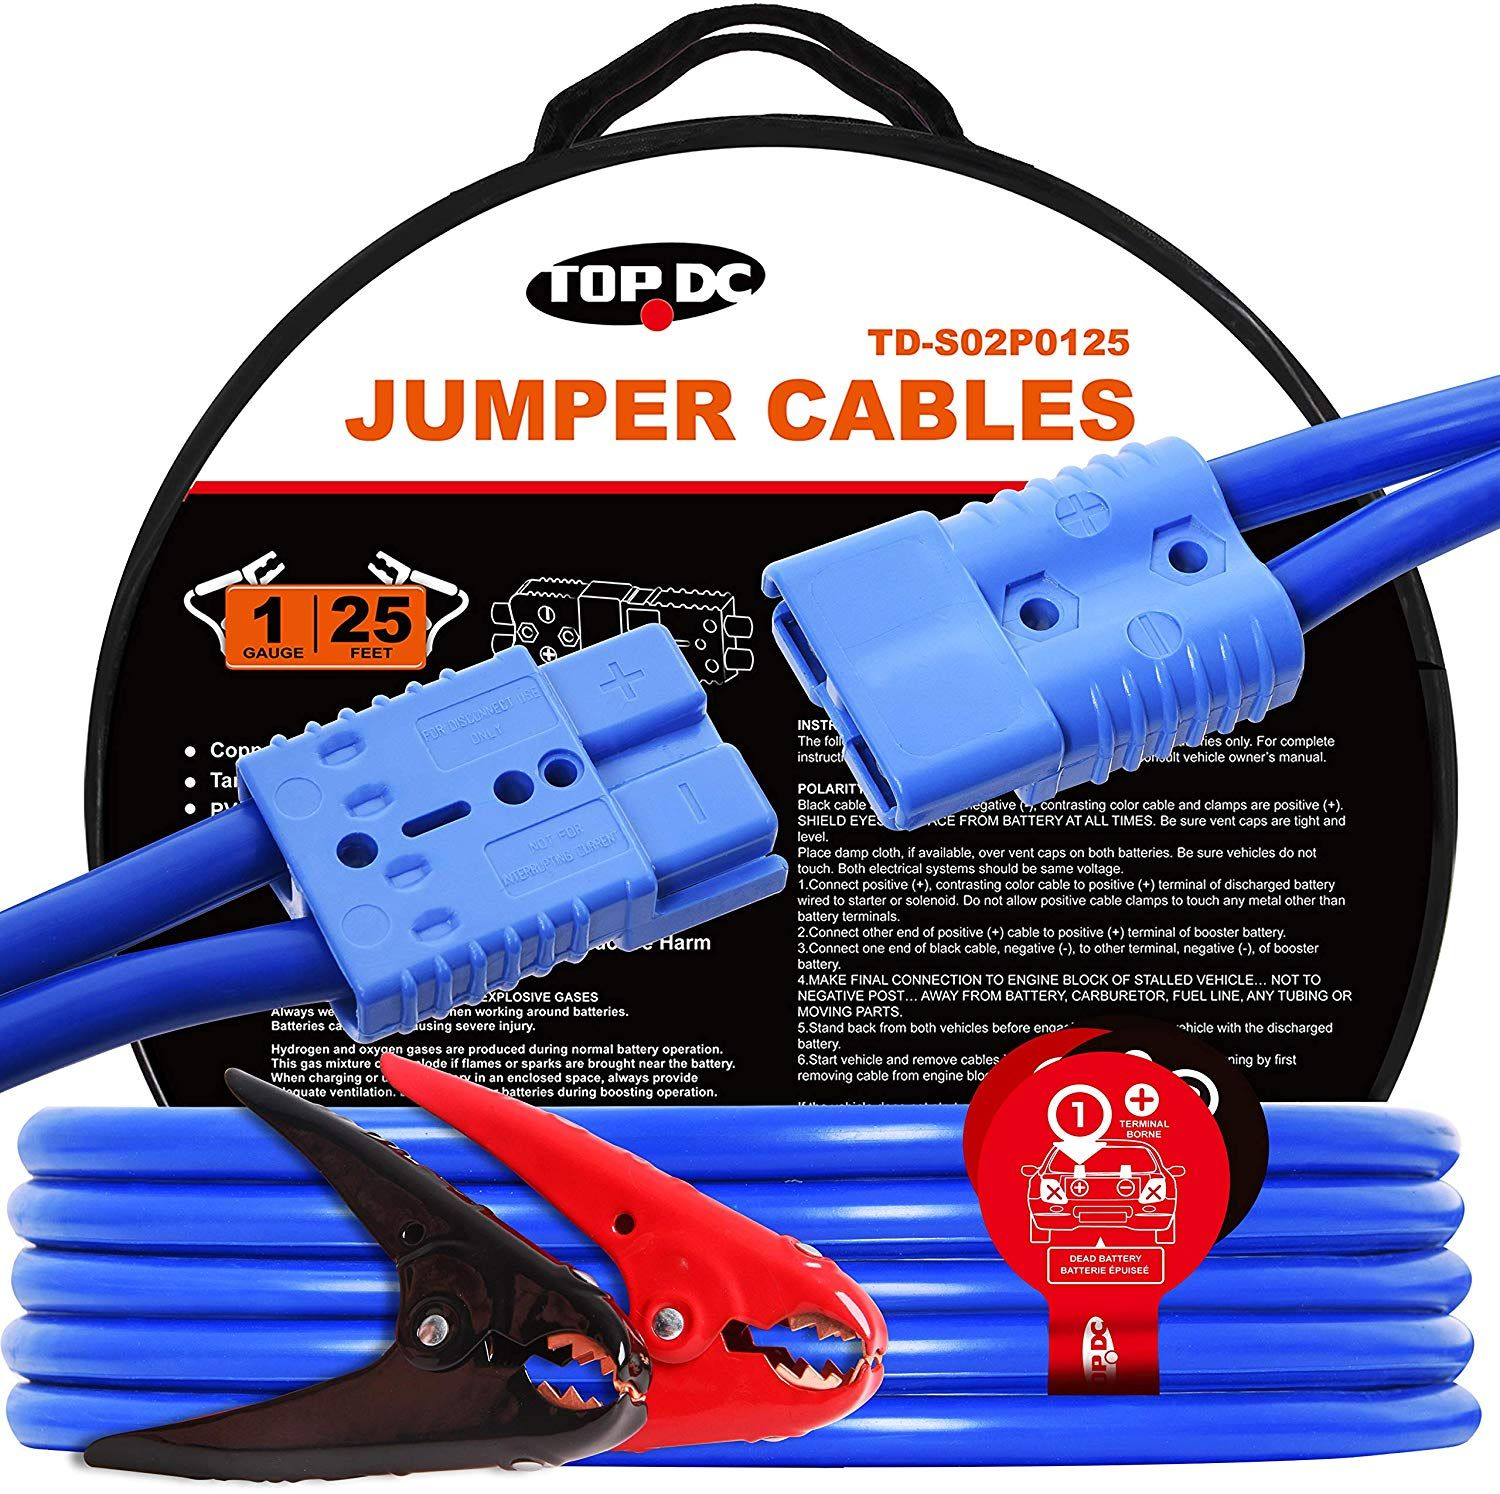 Topdc Jumper Cables With Quick Plug 1 Gauge 25 Feet 700amp Heavy Duty Booster Cables 1awg X 25ft In 2020 Travel Trailer Floor Plans Work Truck Universal Power Adapter